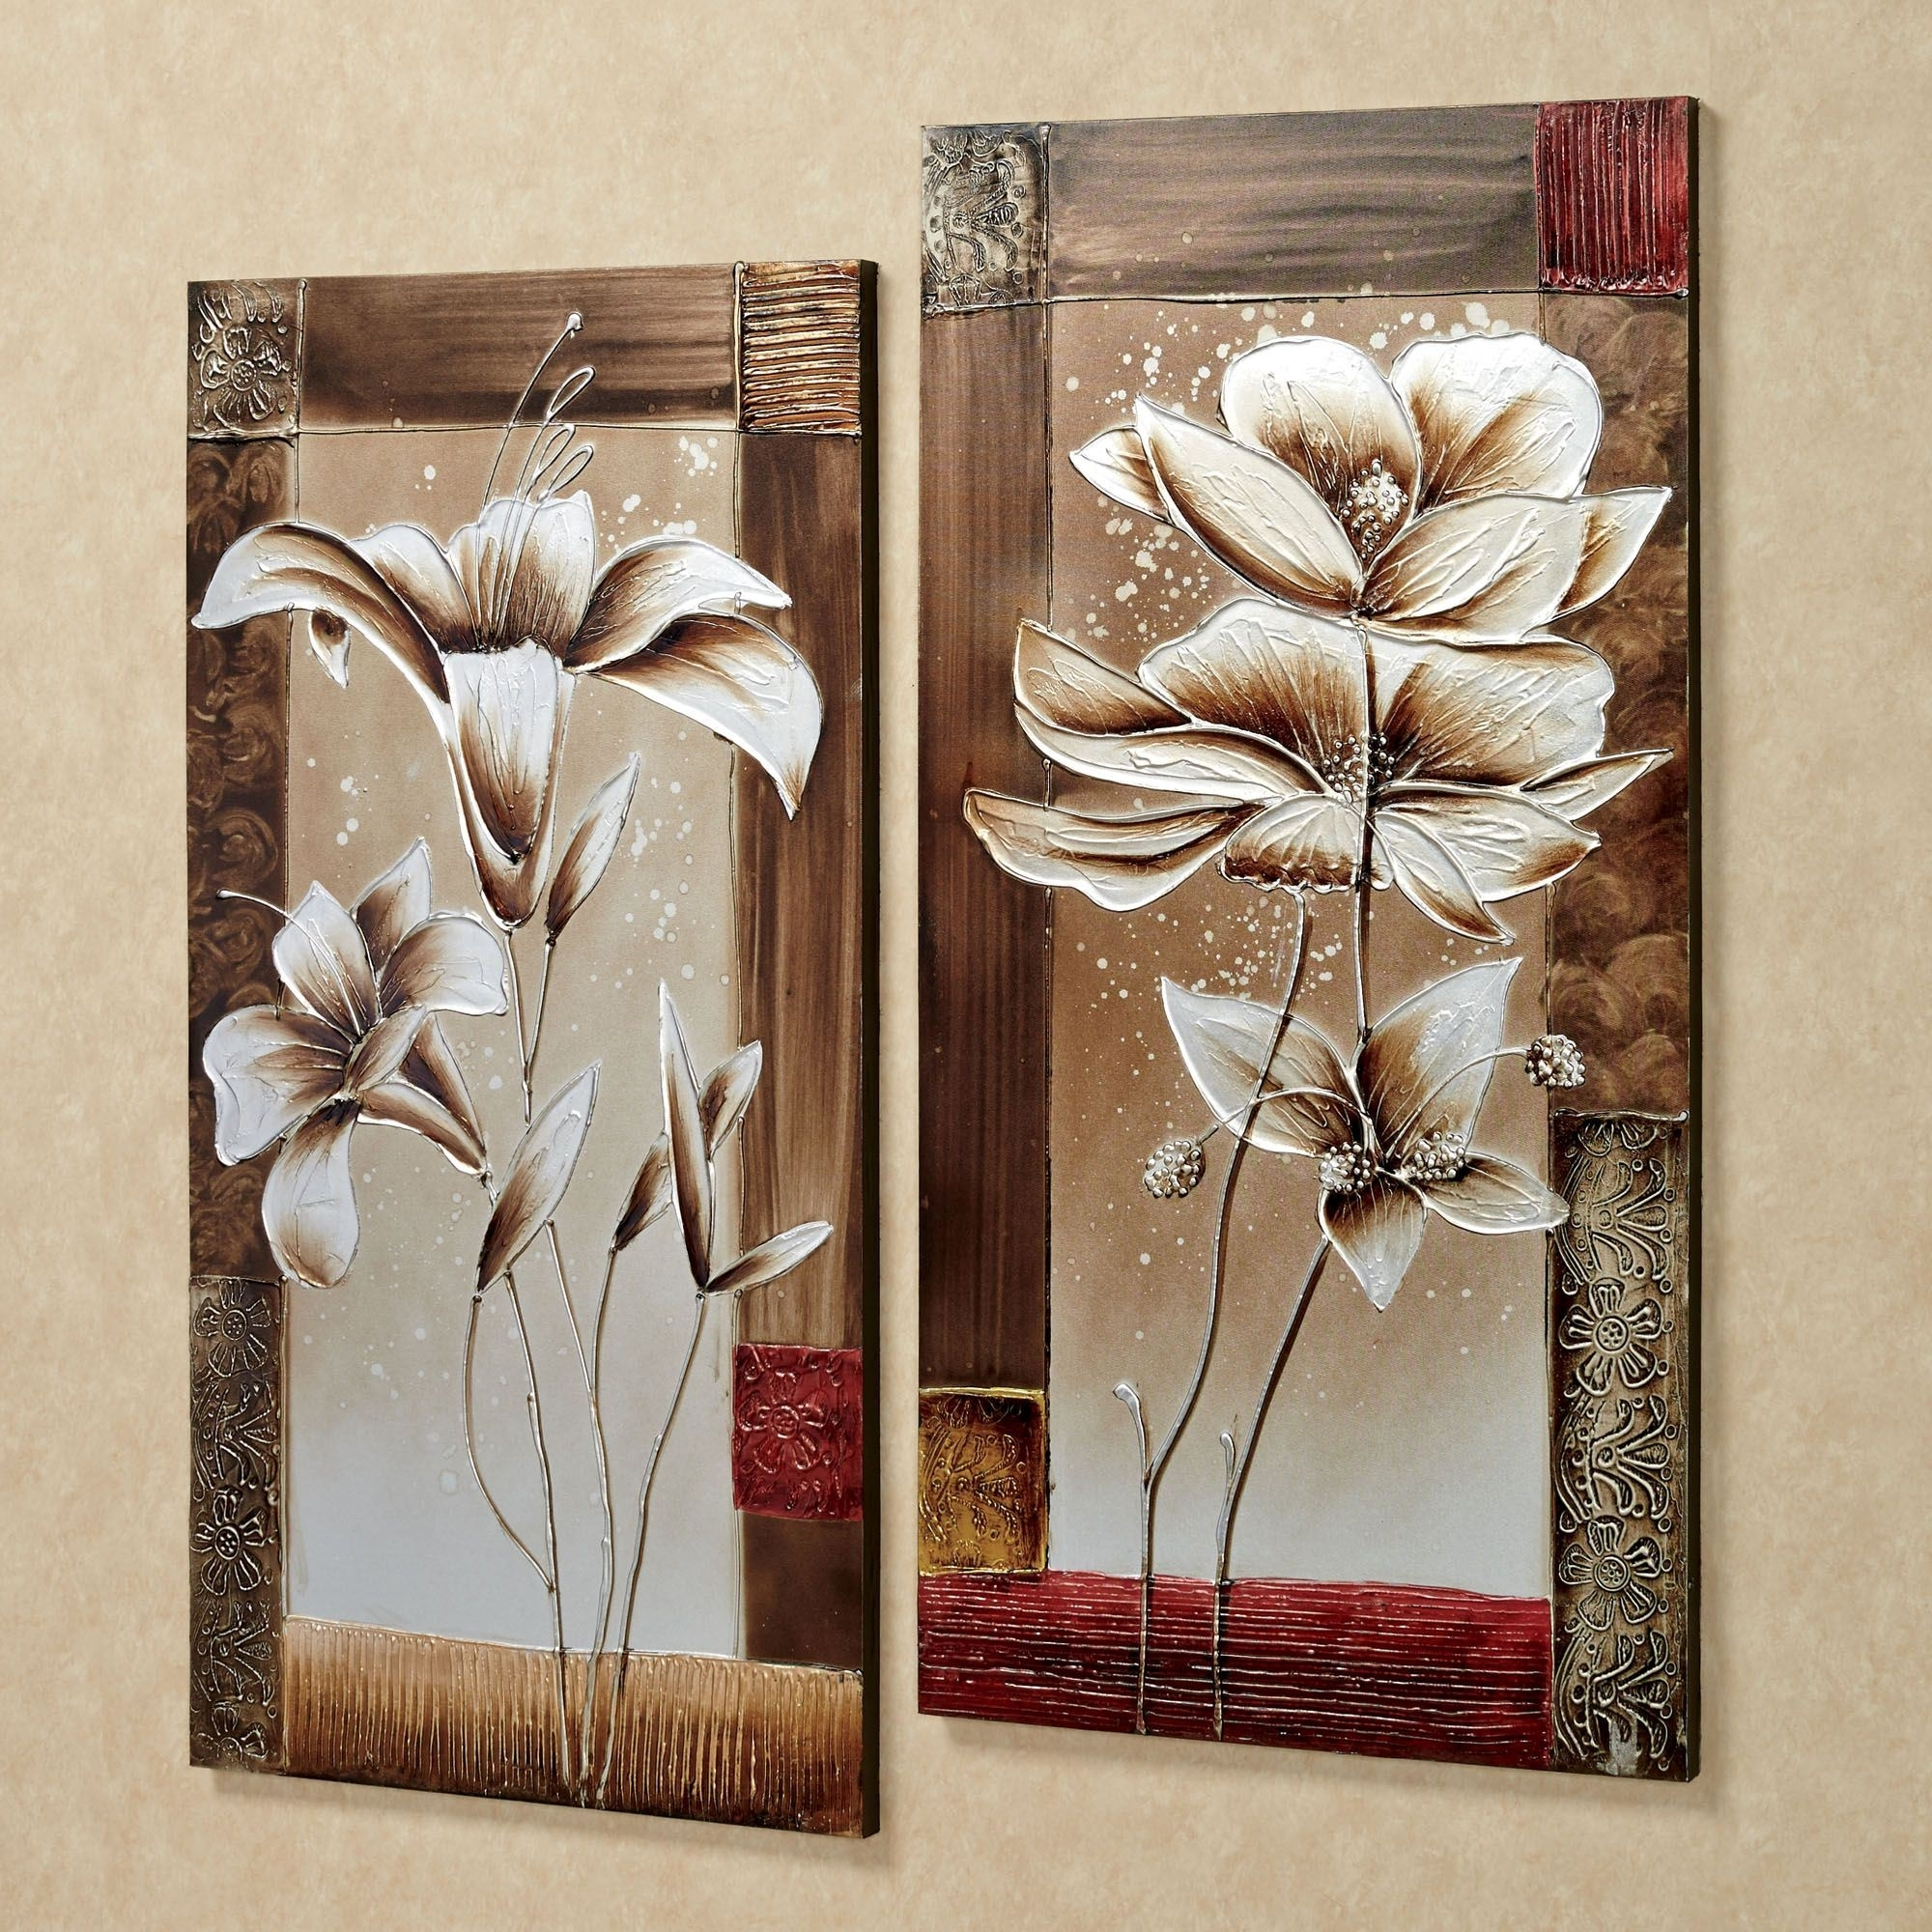 Canvas Wall Art | Touch Of Class Regarding Most Recently Released Earth Tones Wall Accents (View 4 of 15)